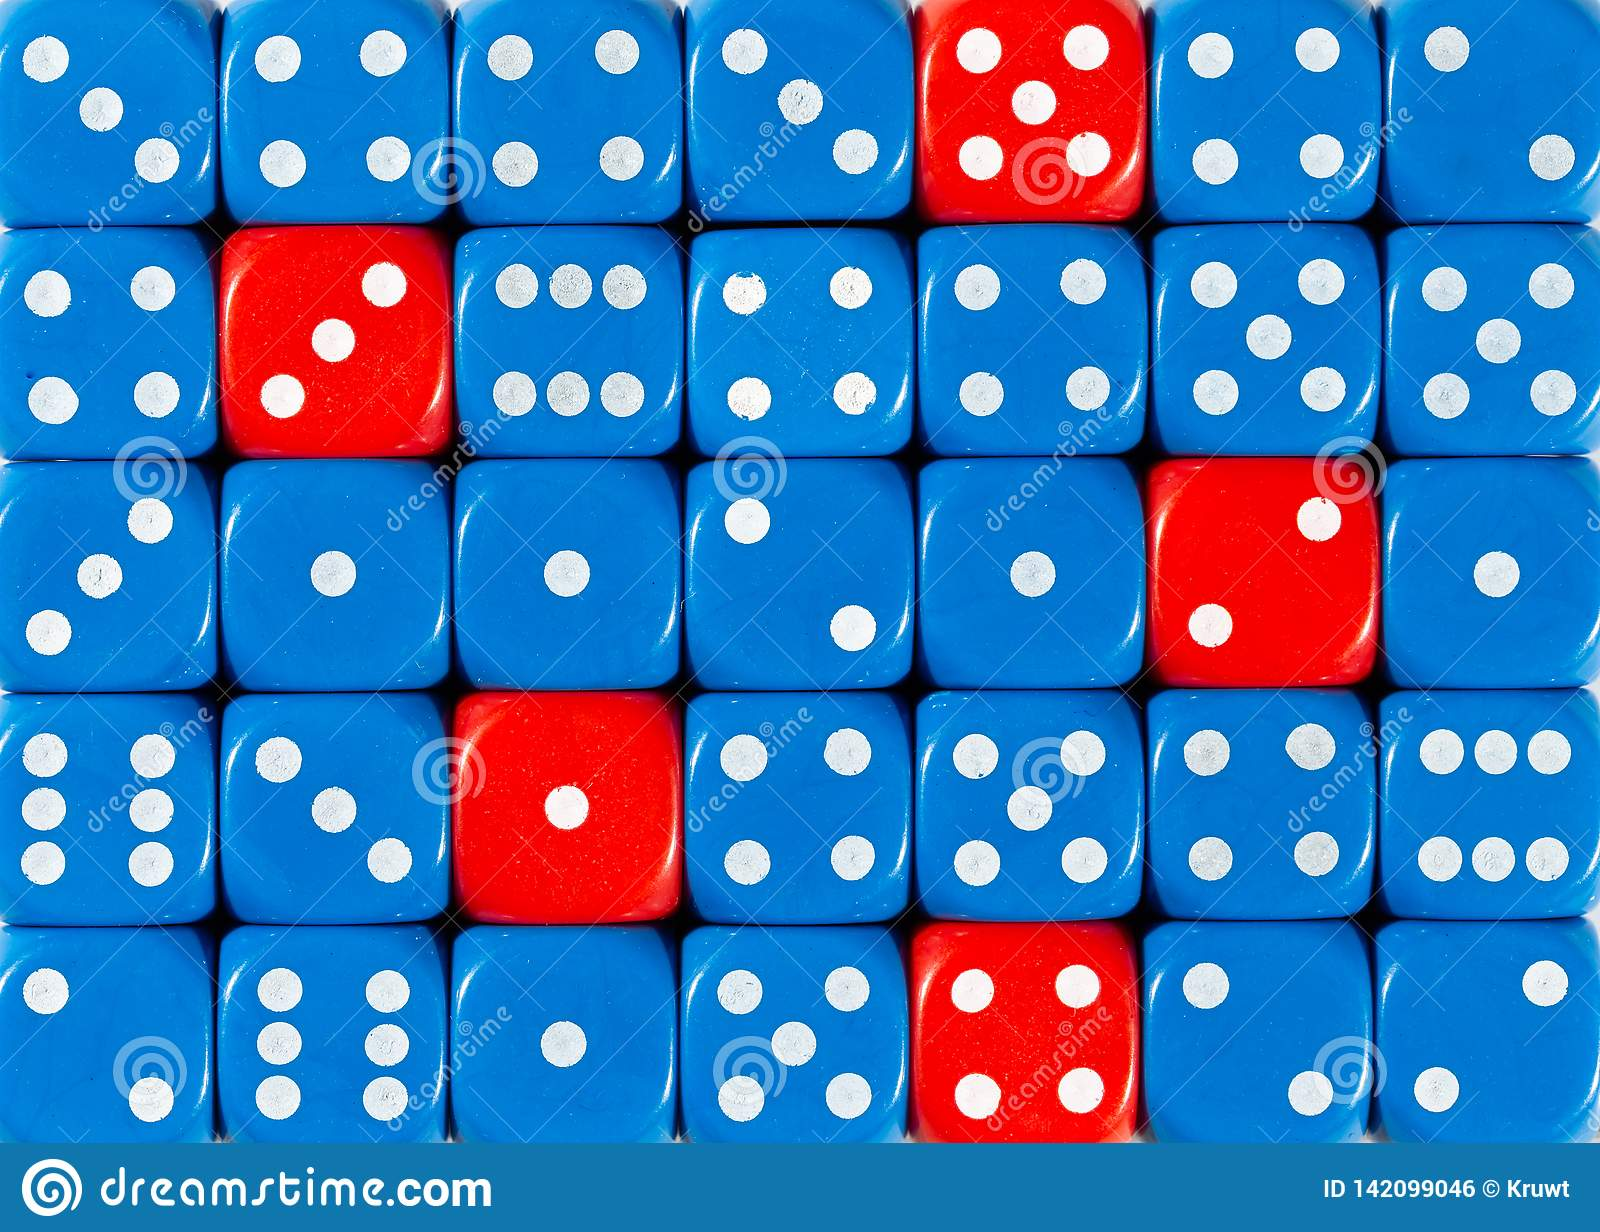 Background of random ordered blue dices with five red cubes